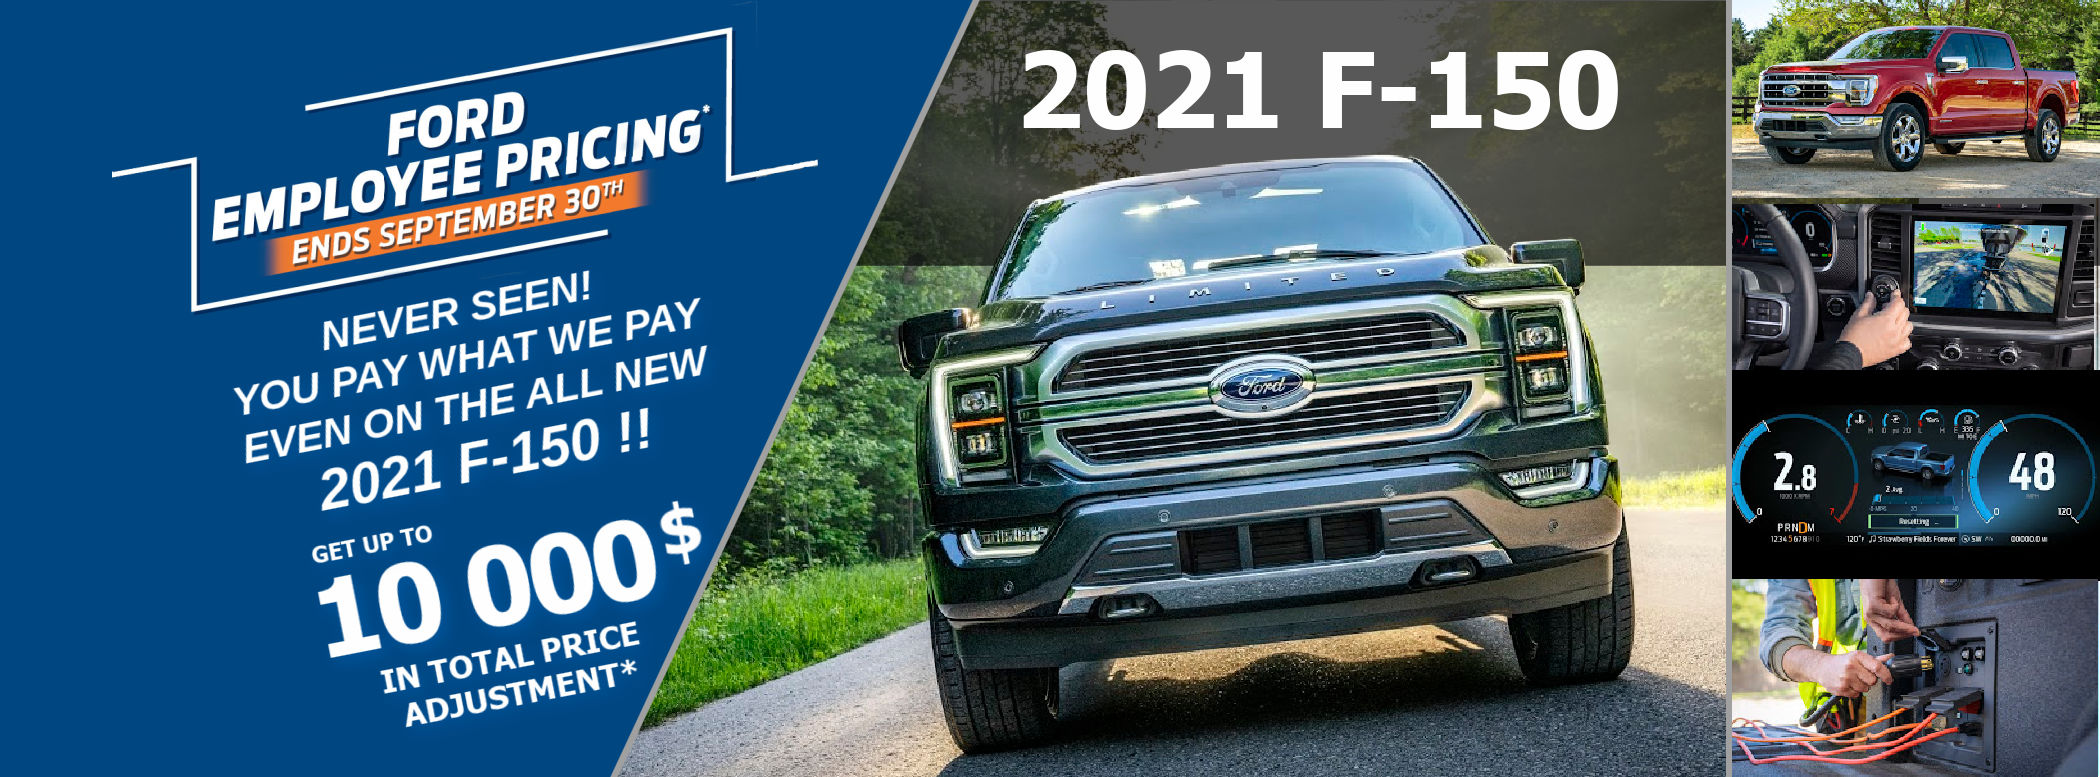 2021 F-150 Employee Pricing Smiths Falls Ford